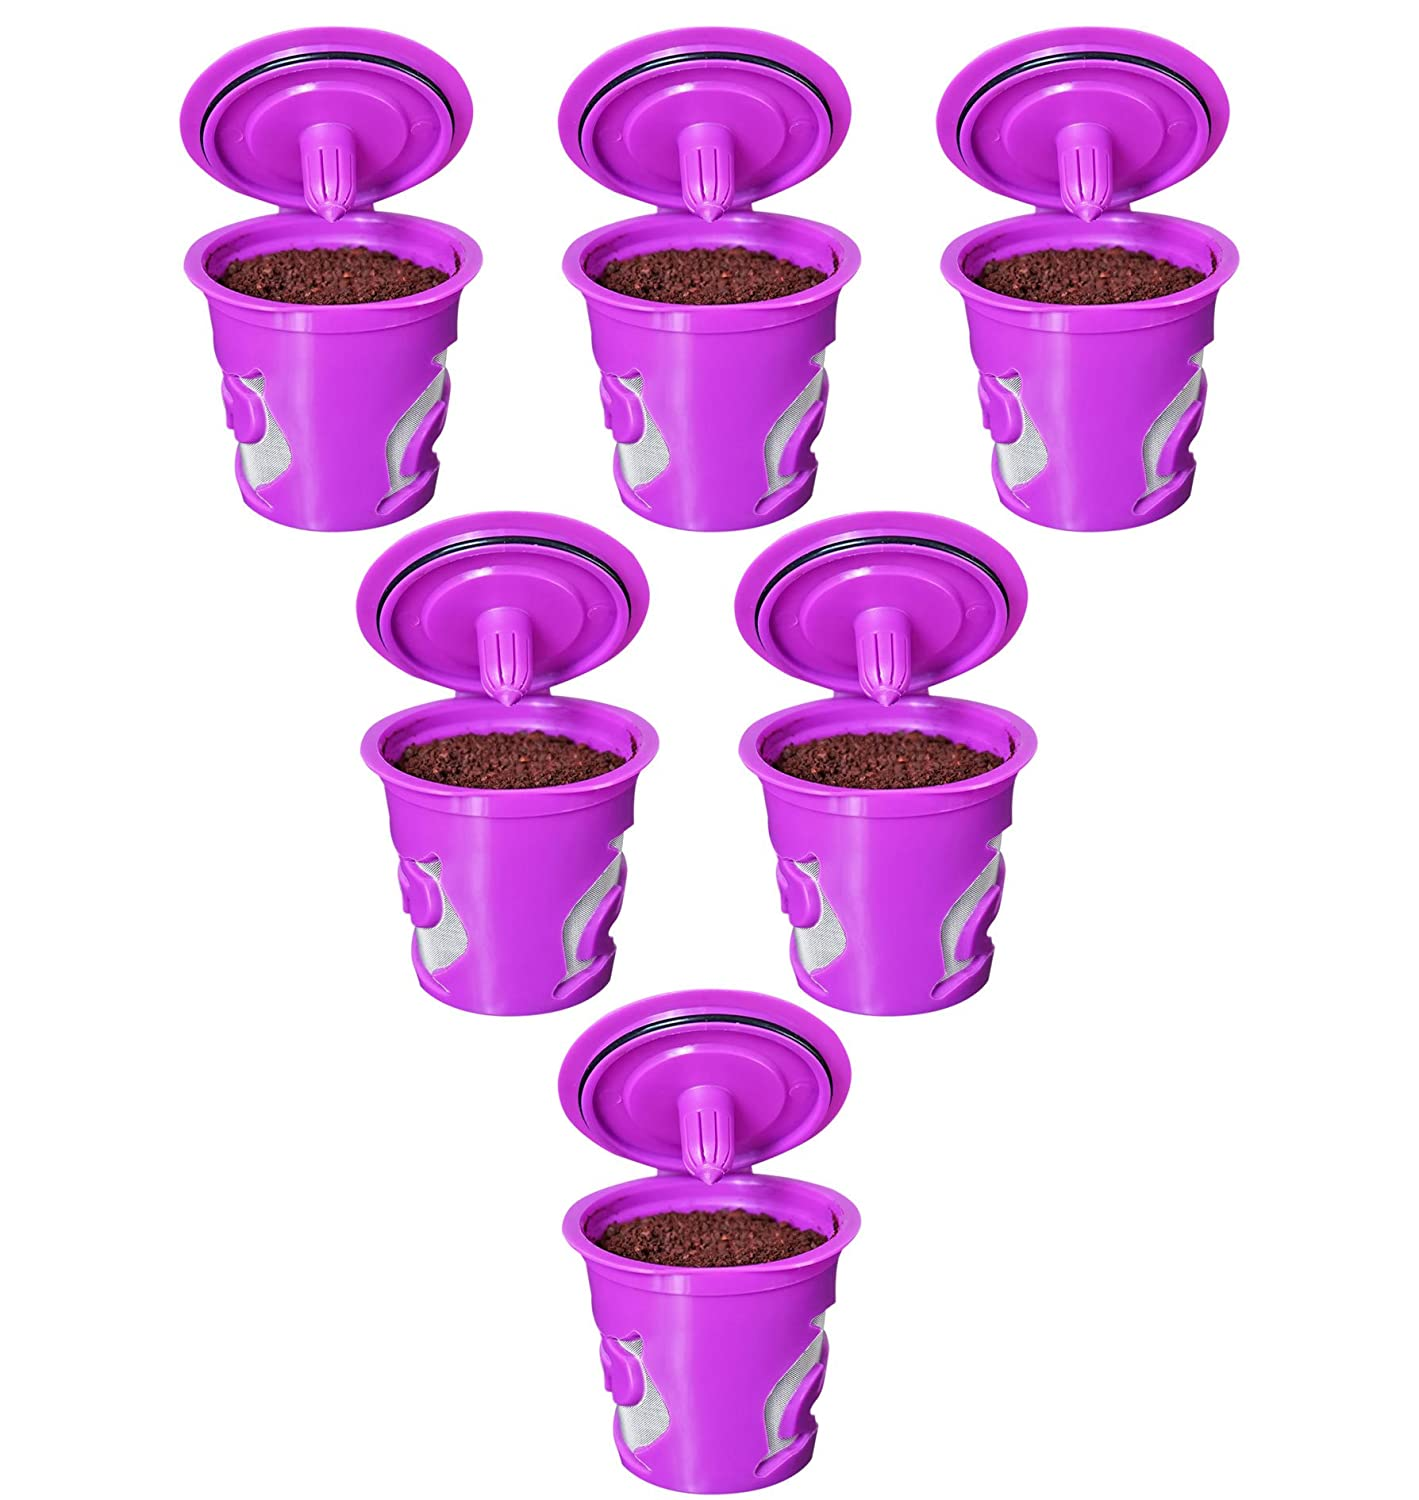 FROZ-CUP 2.0 - 6 Refillable/Reusable K Cups for Keurig 2.0 - K200, K300, K400, K500 Series and all 1.0 Brewers (6-Pack)